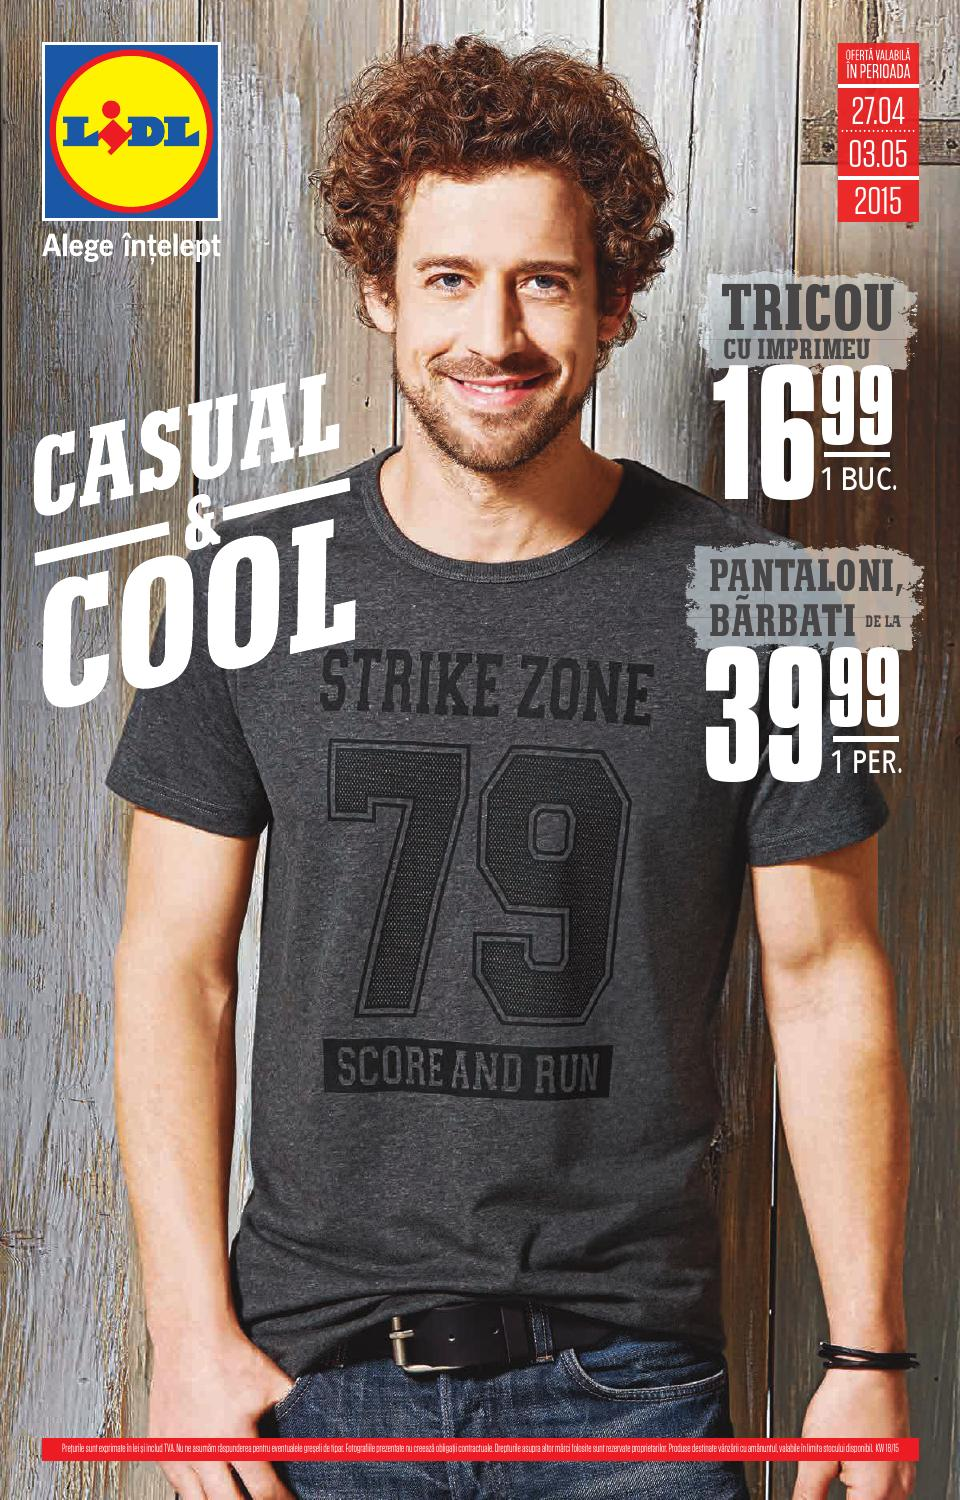 Lidl catalog - COOL and CASUAL 27 aprilie - 3 mai 2015